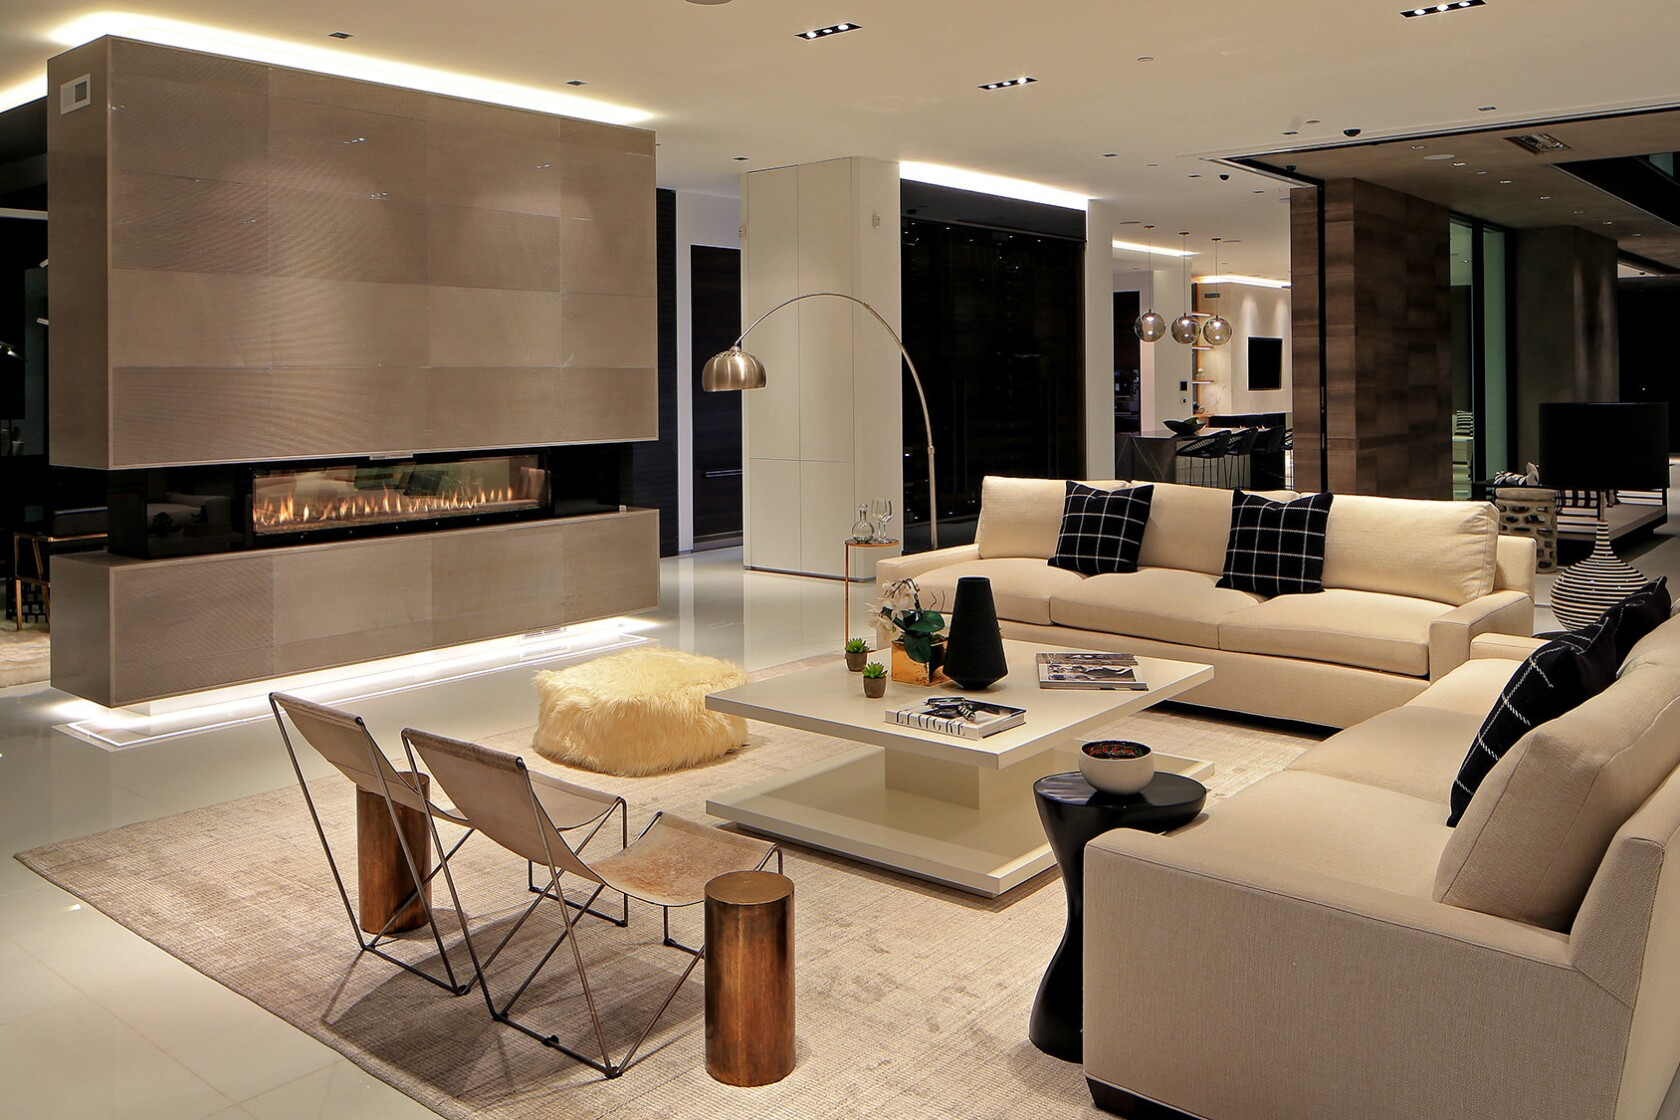 Home of the Week: Glitz and glam at a new Bel-Air showplace